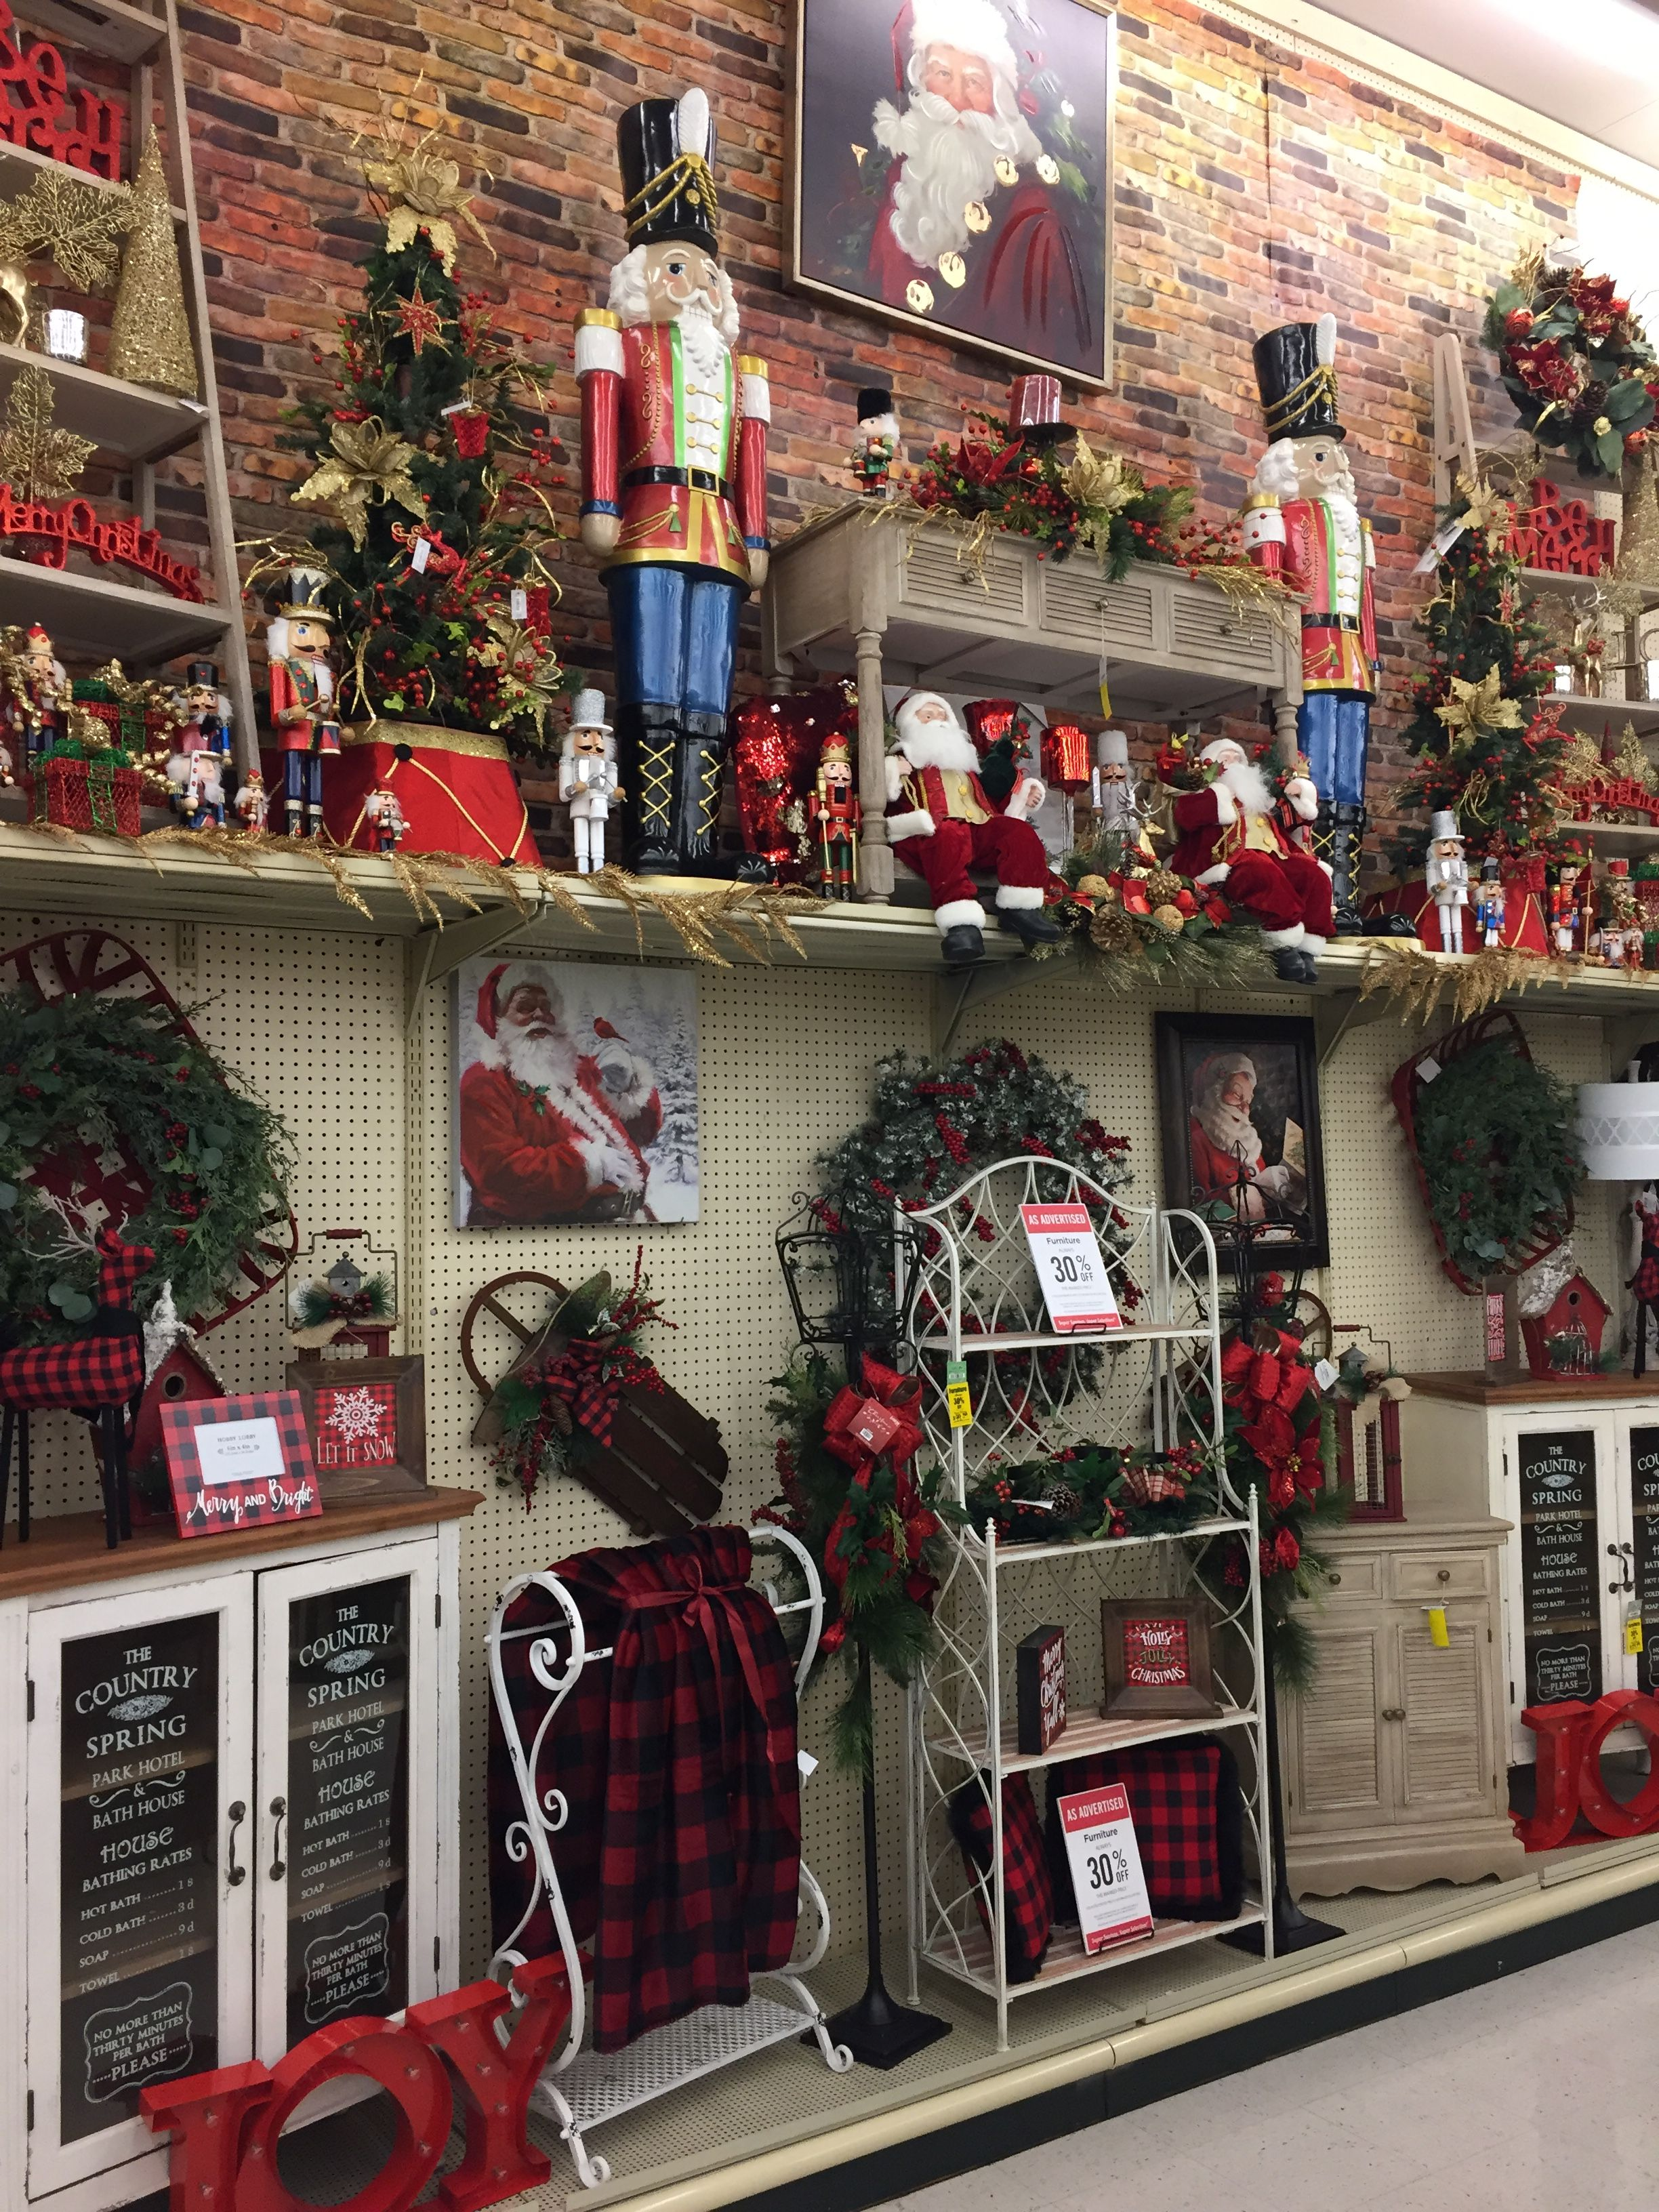 Hobby Lobby Christmas Decorations 2019 Pin by Lorena on Hobby Lobby in 2019 | Hobby lobby christmas